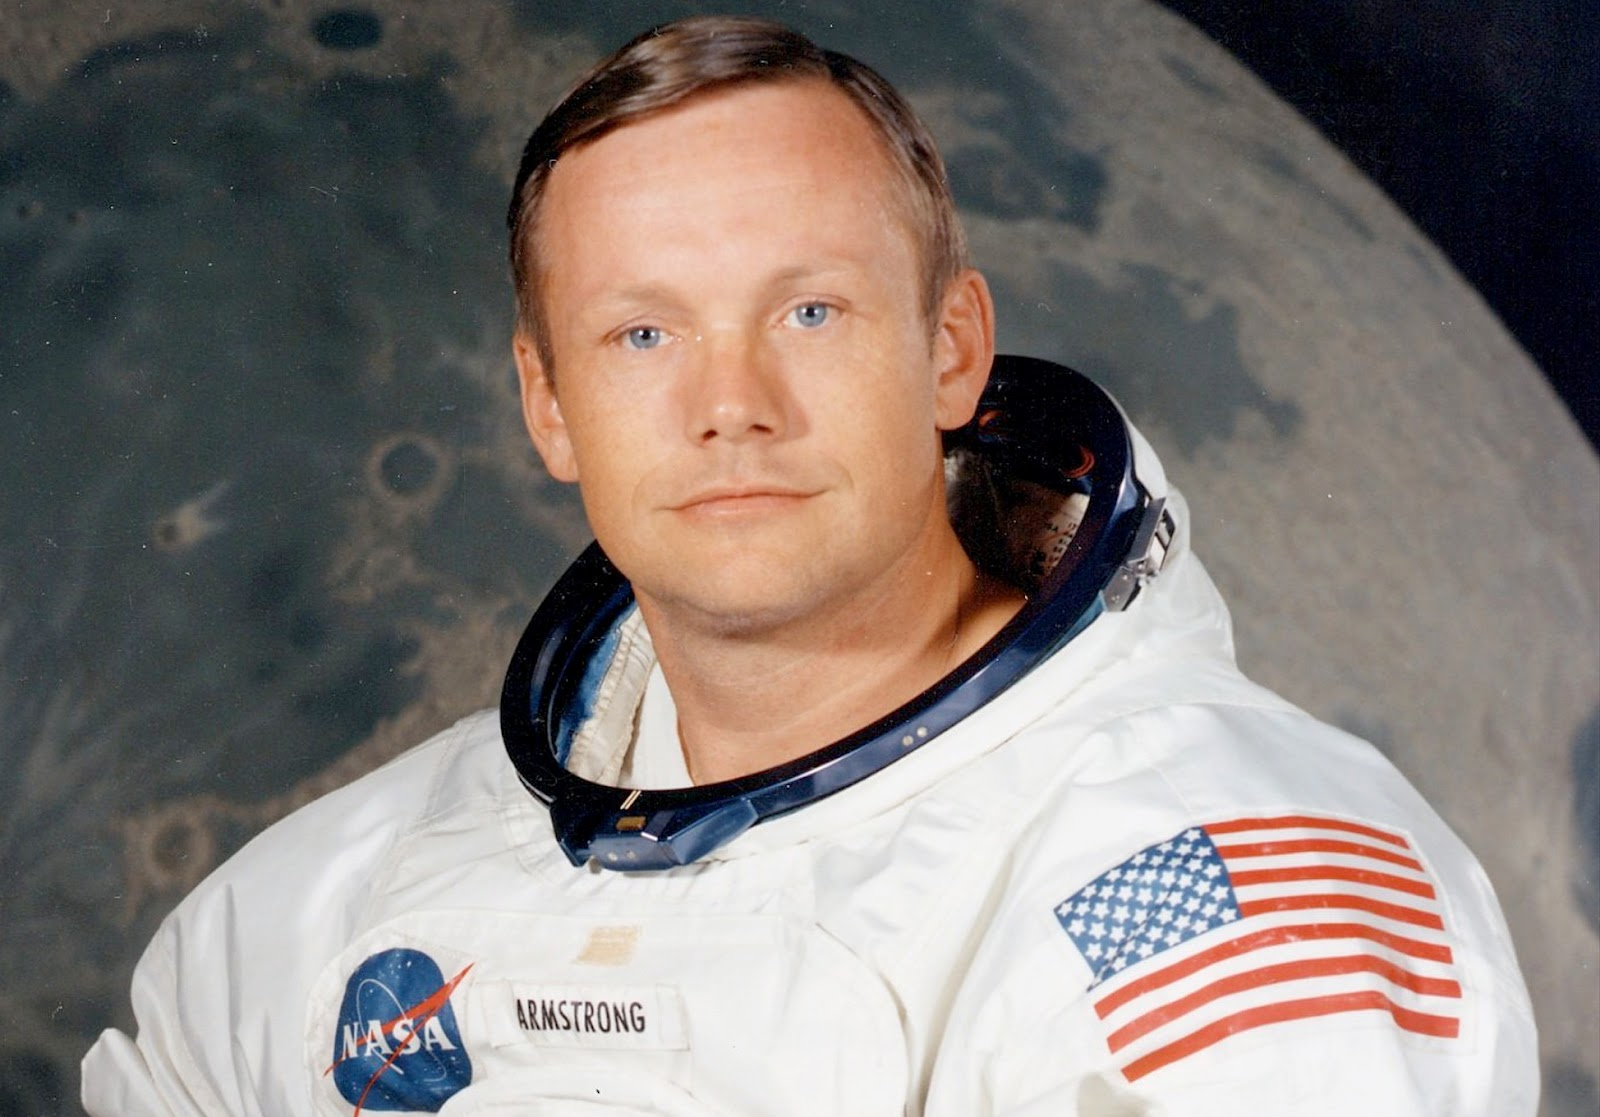 US HISTORY: Neil Armstrong by Megan Logsdon